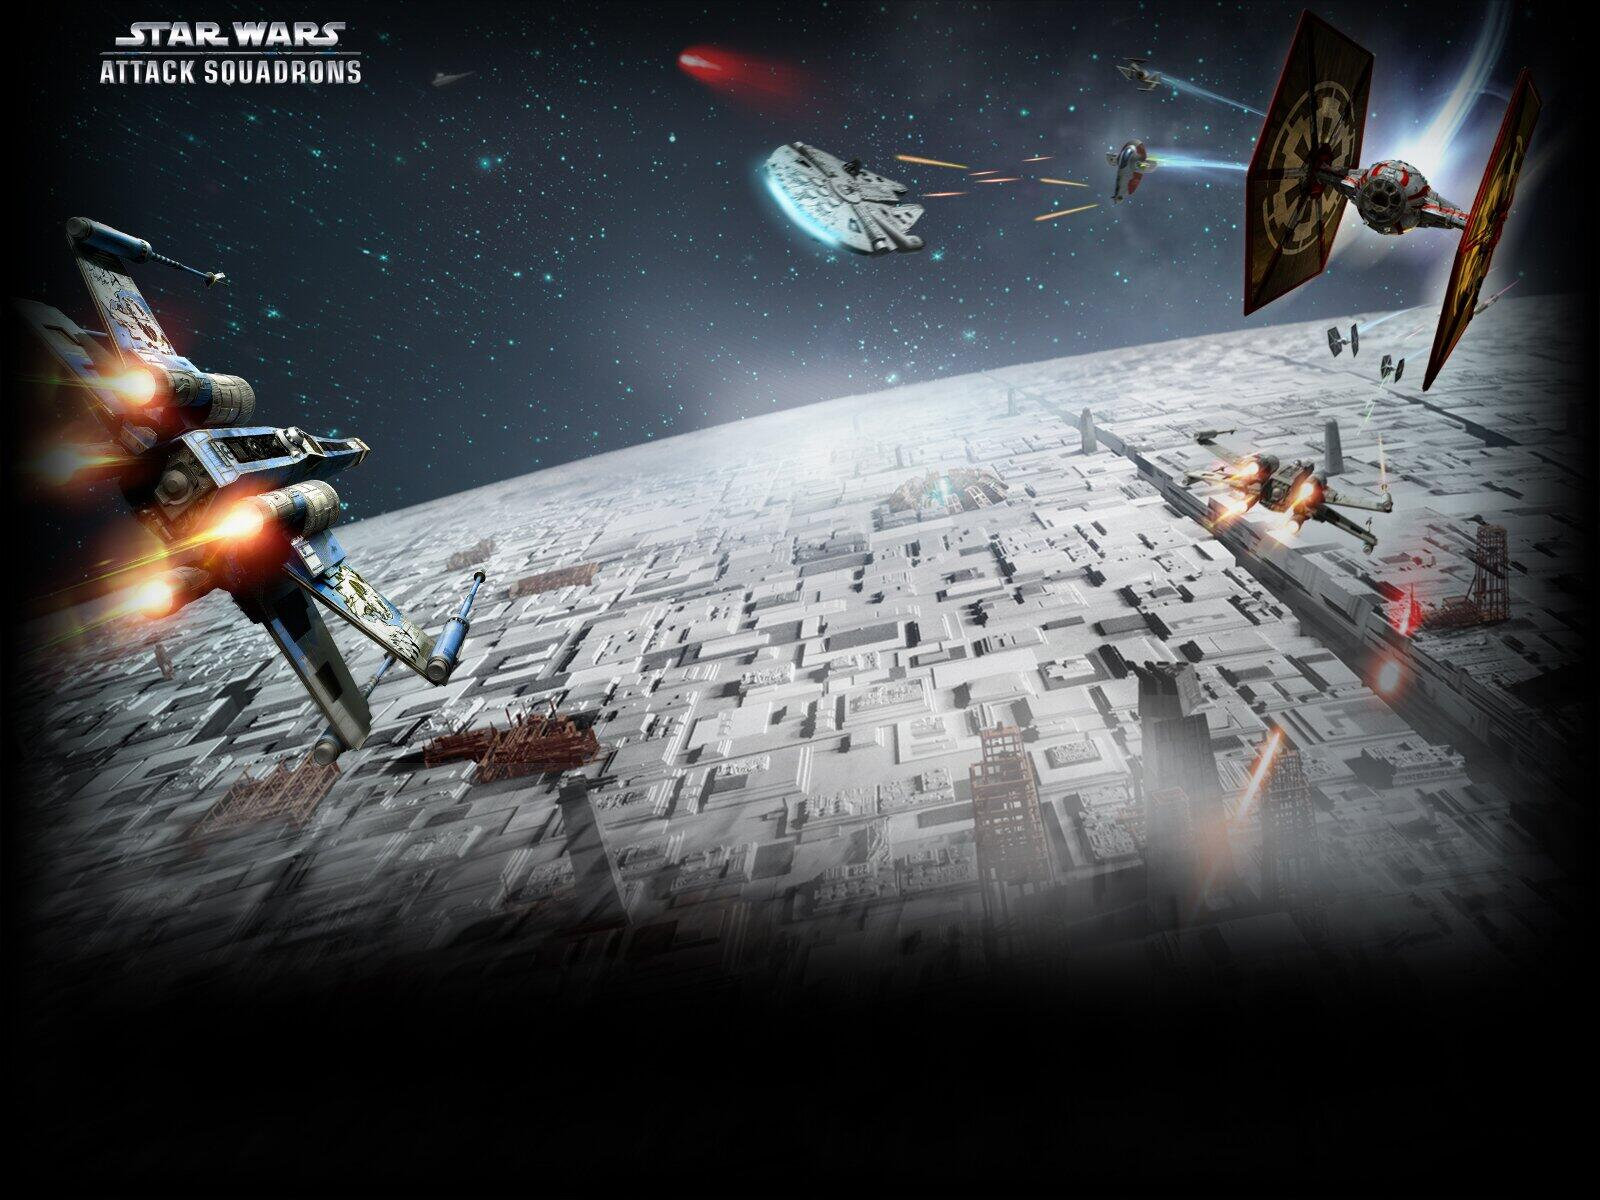 Star Wars Attack Squadrons wallpaper 1